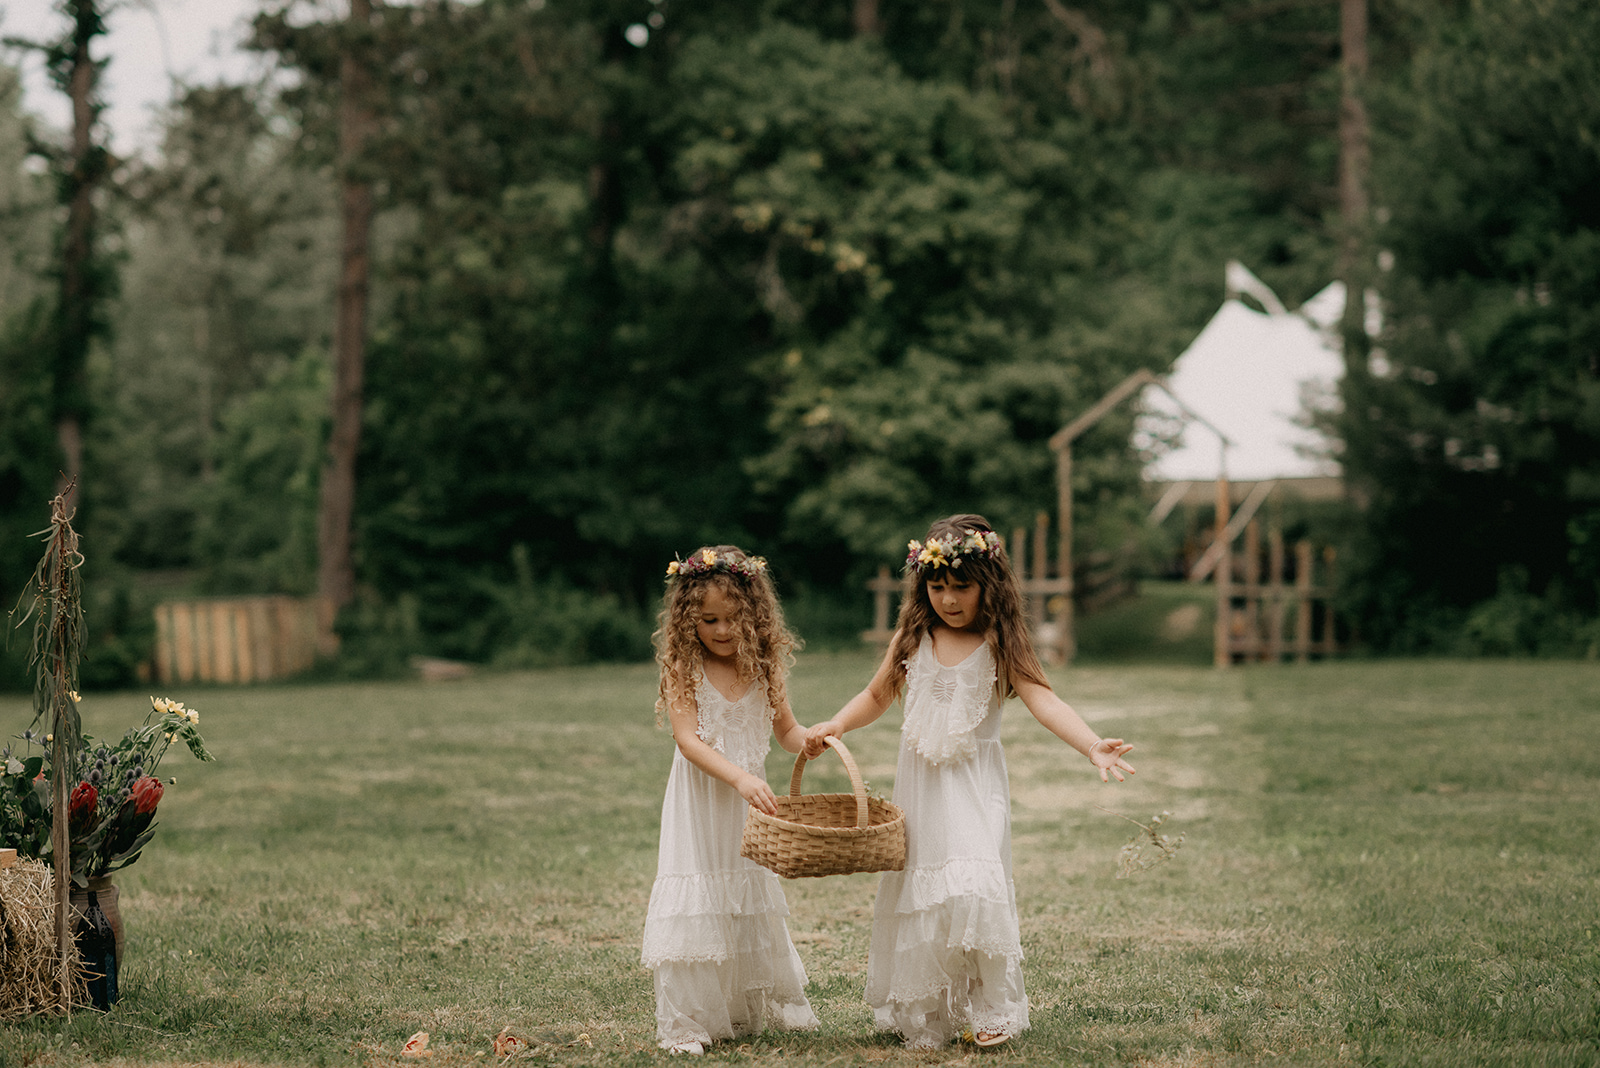 Flower girls with flower crowns down the aisle - Pearl Weddings & Events